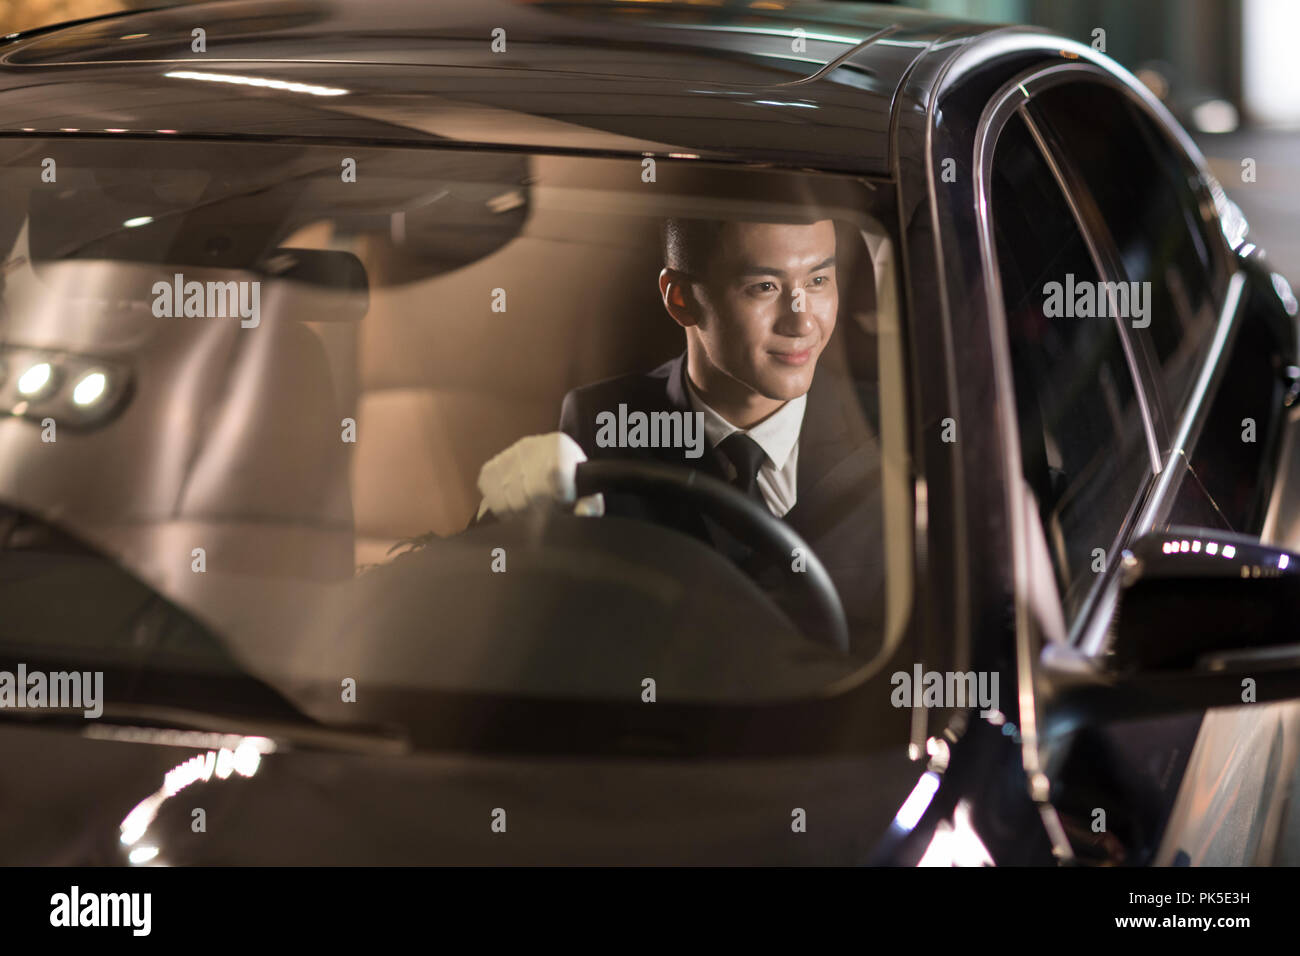 Cheerful chauffeur driving car - Stock Image